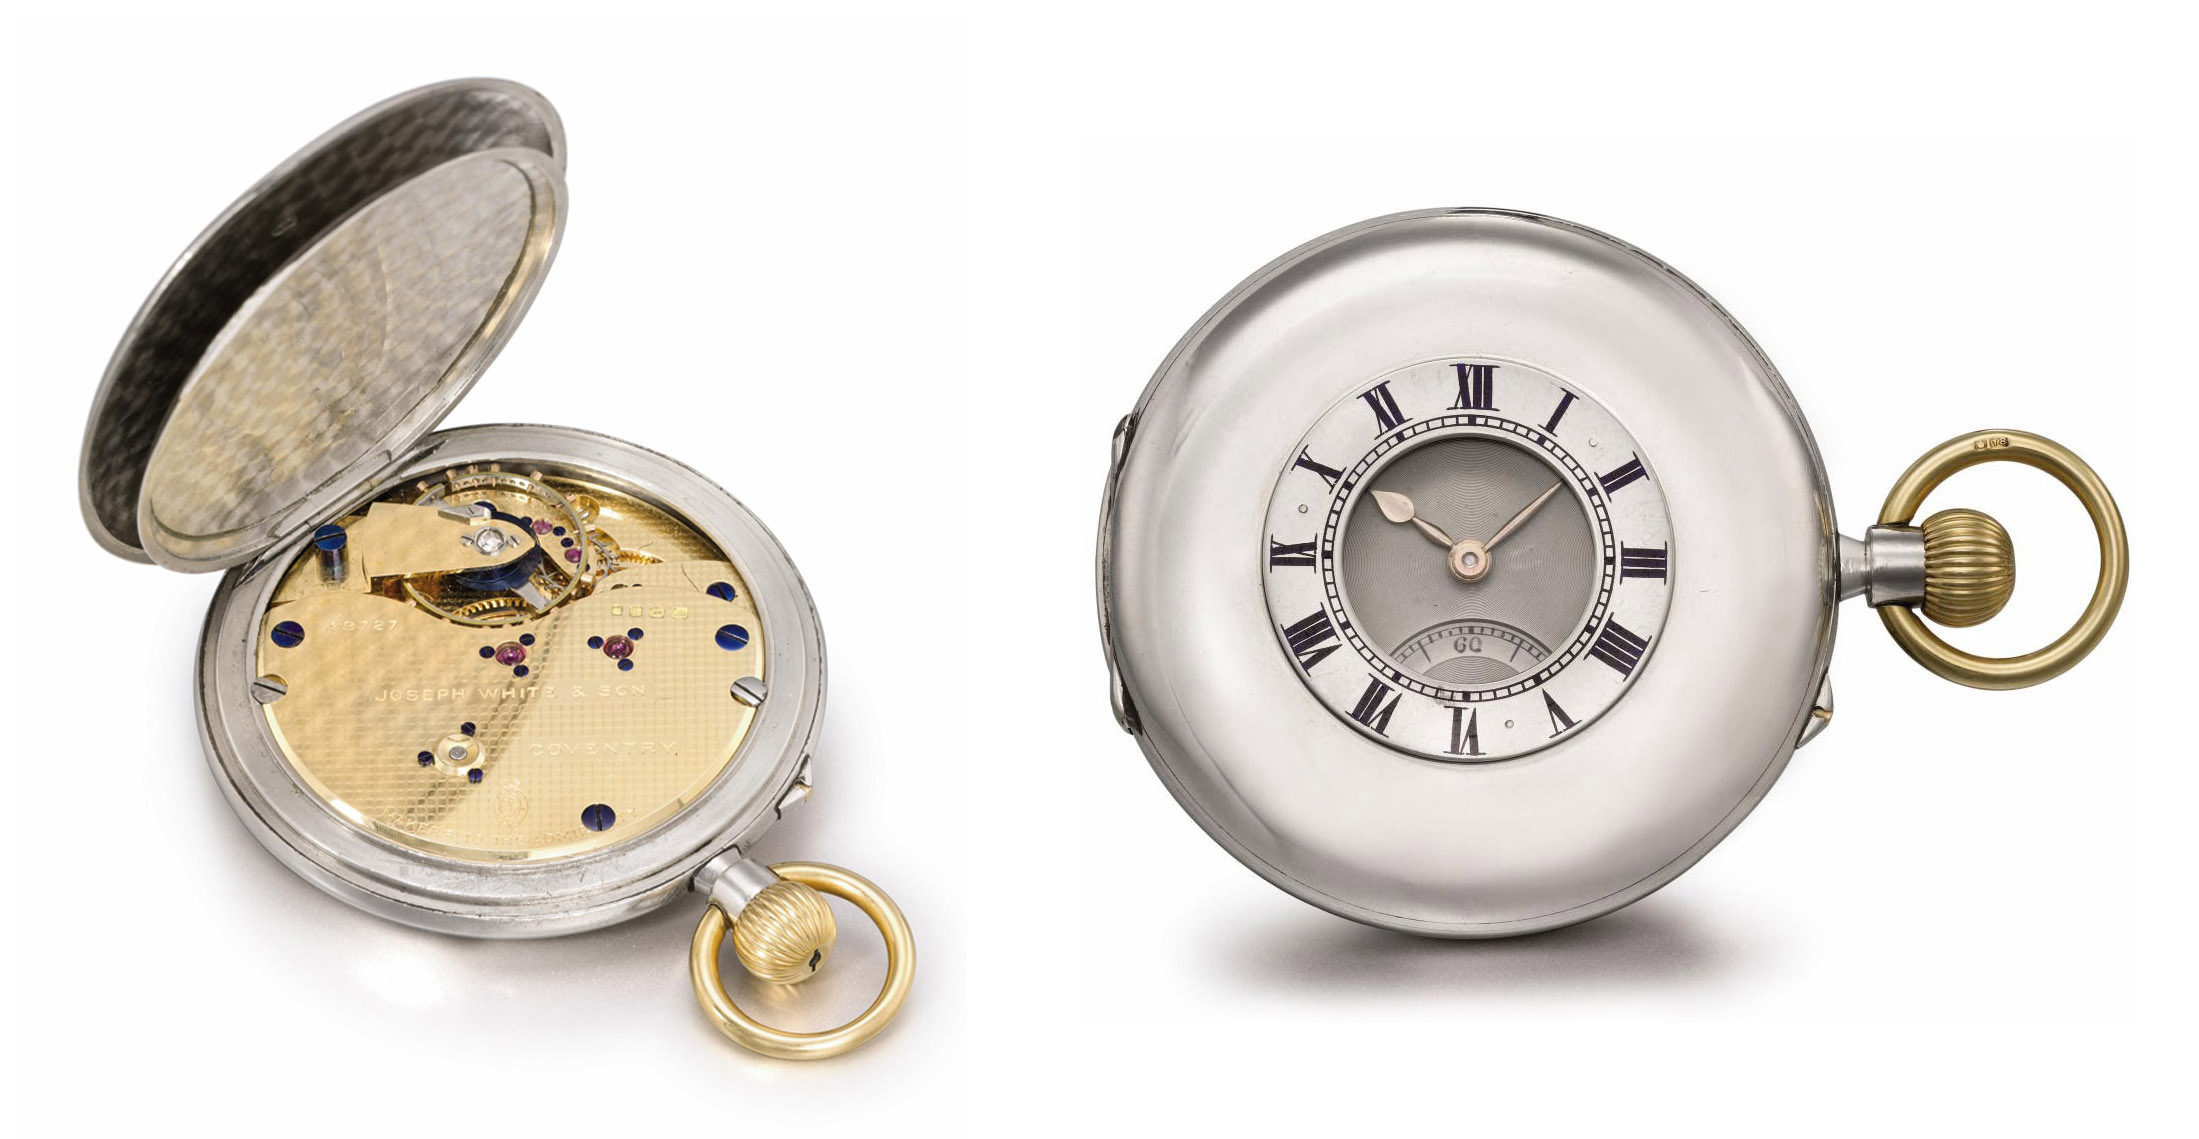 Joseph White. A rare and unusual platinum and gold half hunter case keyless lever watch with 18K yellow gold movement